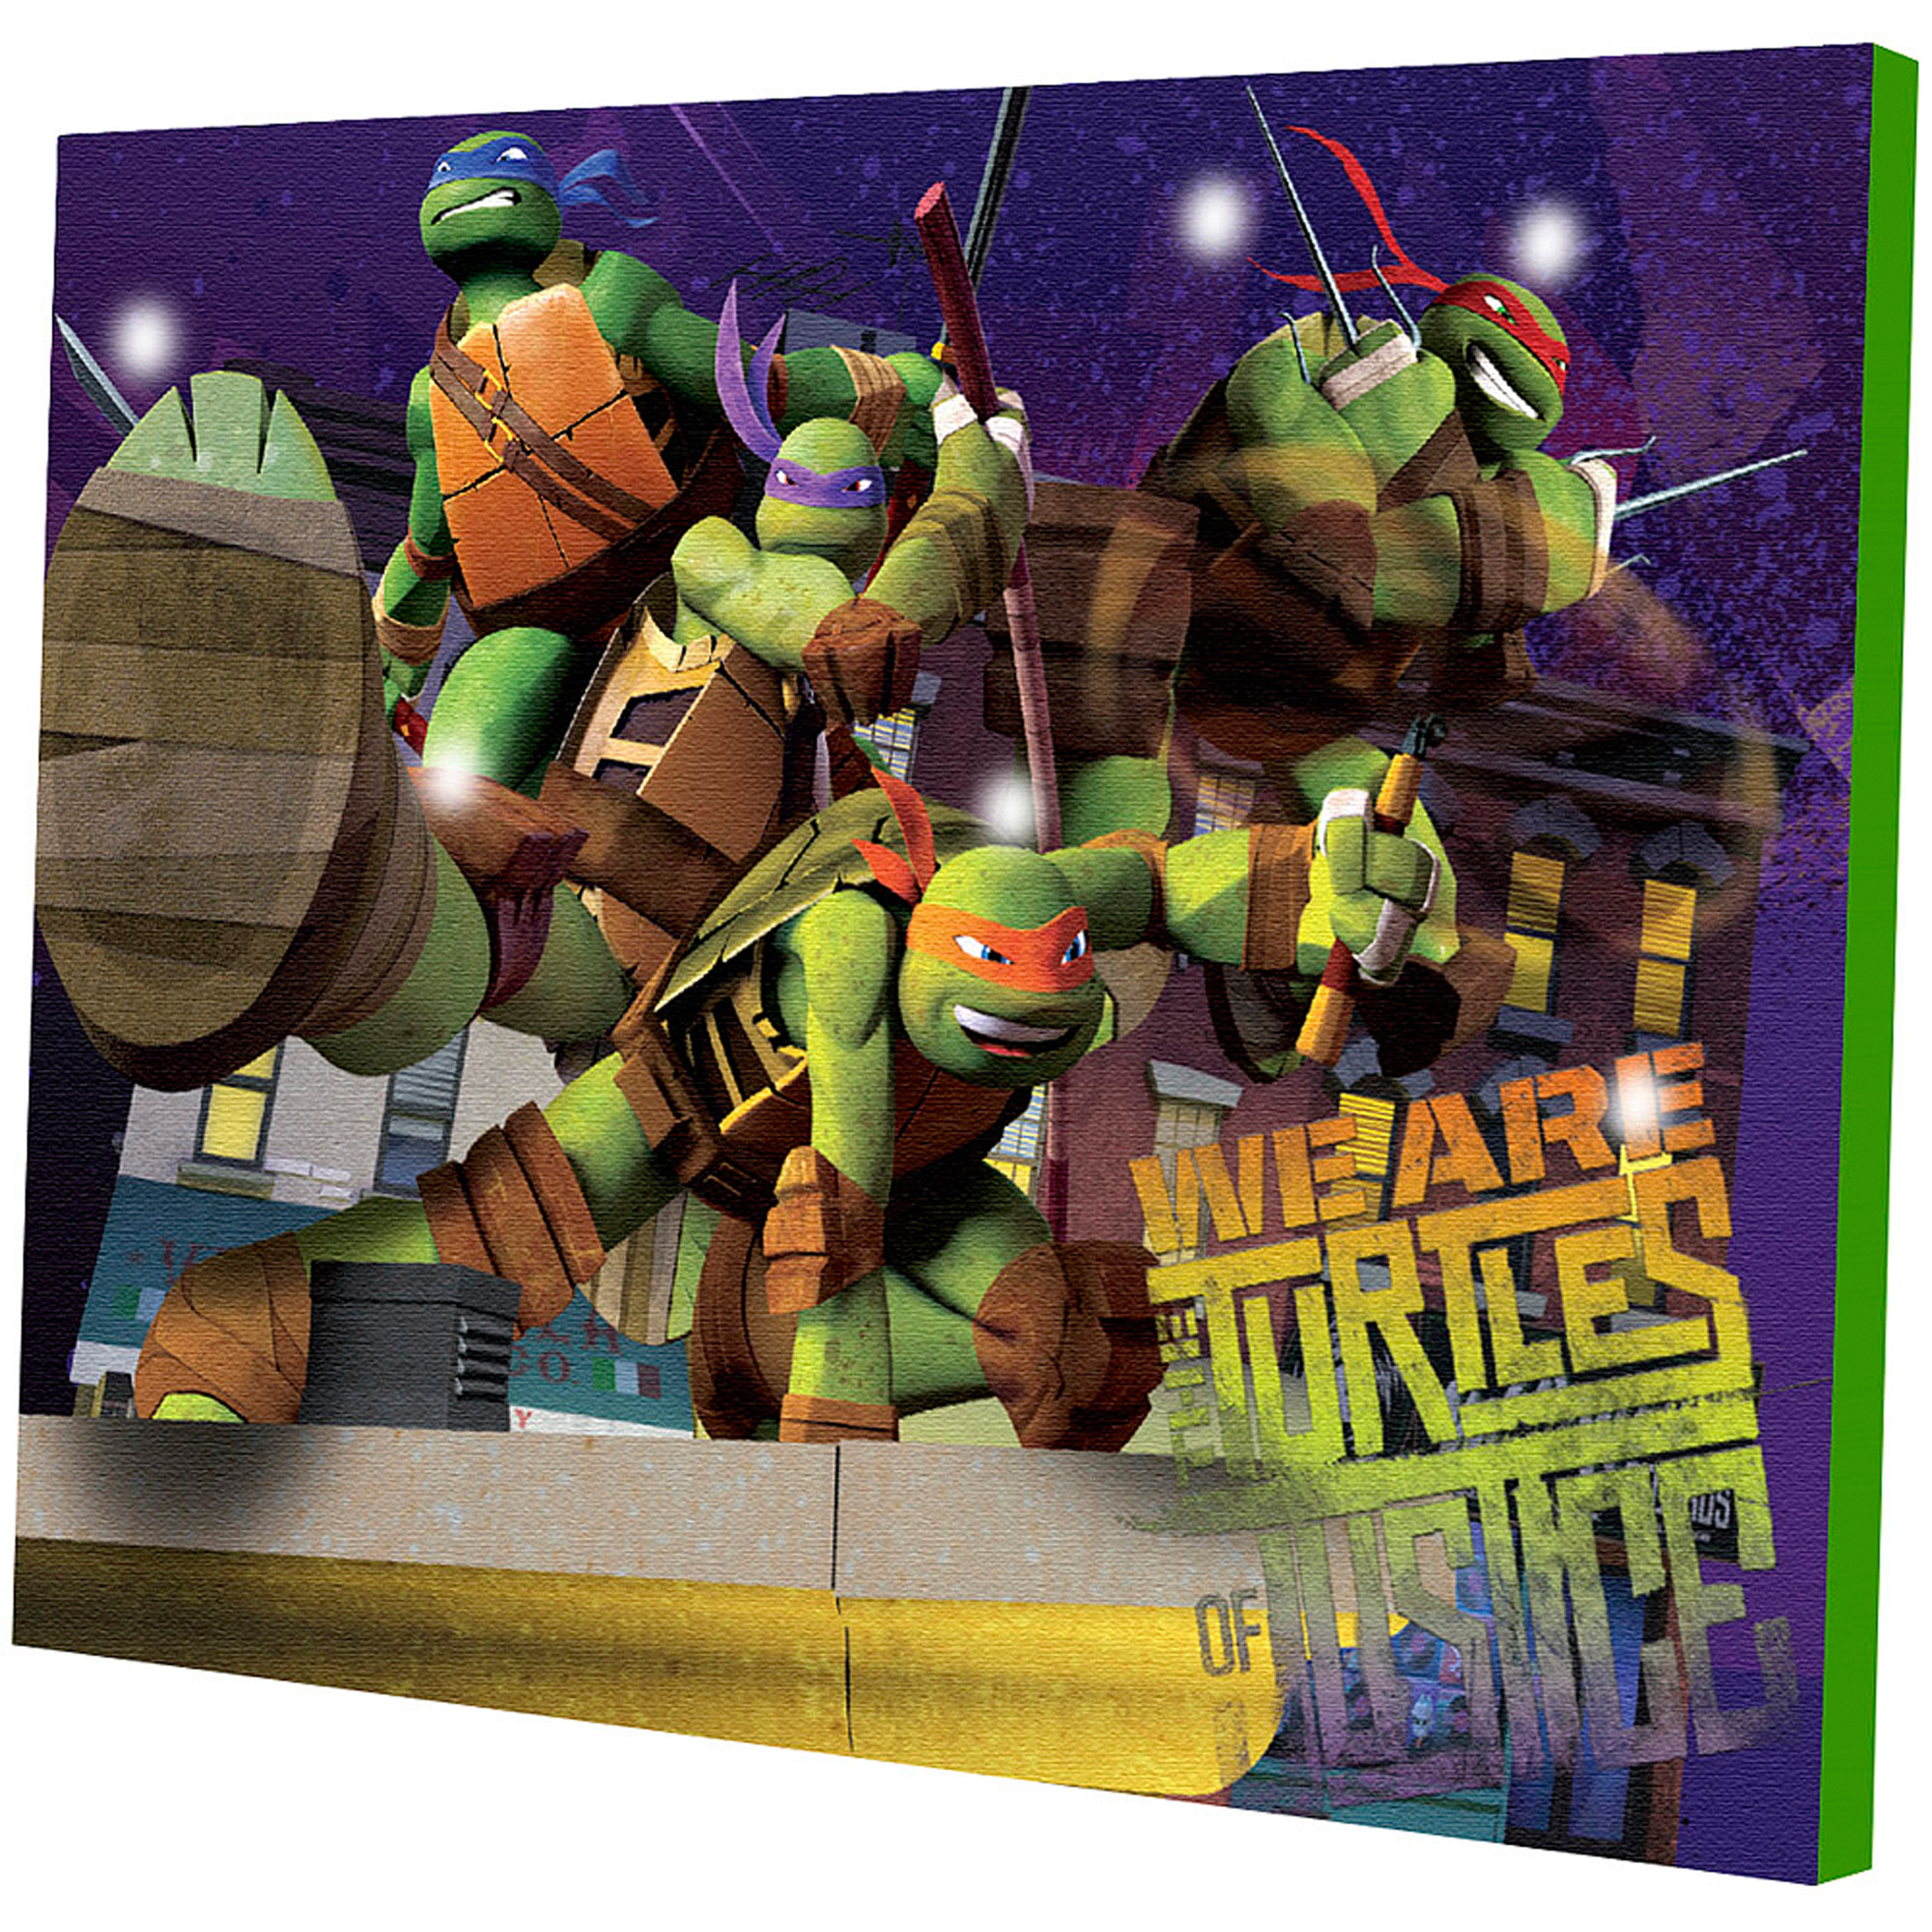 Nickelodeon Teenage Mutant Ninja Turtles Light Up Canvas Wall Art With  BONUS LED Lights   Walmart.com